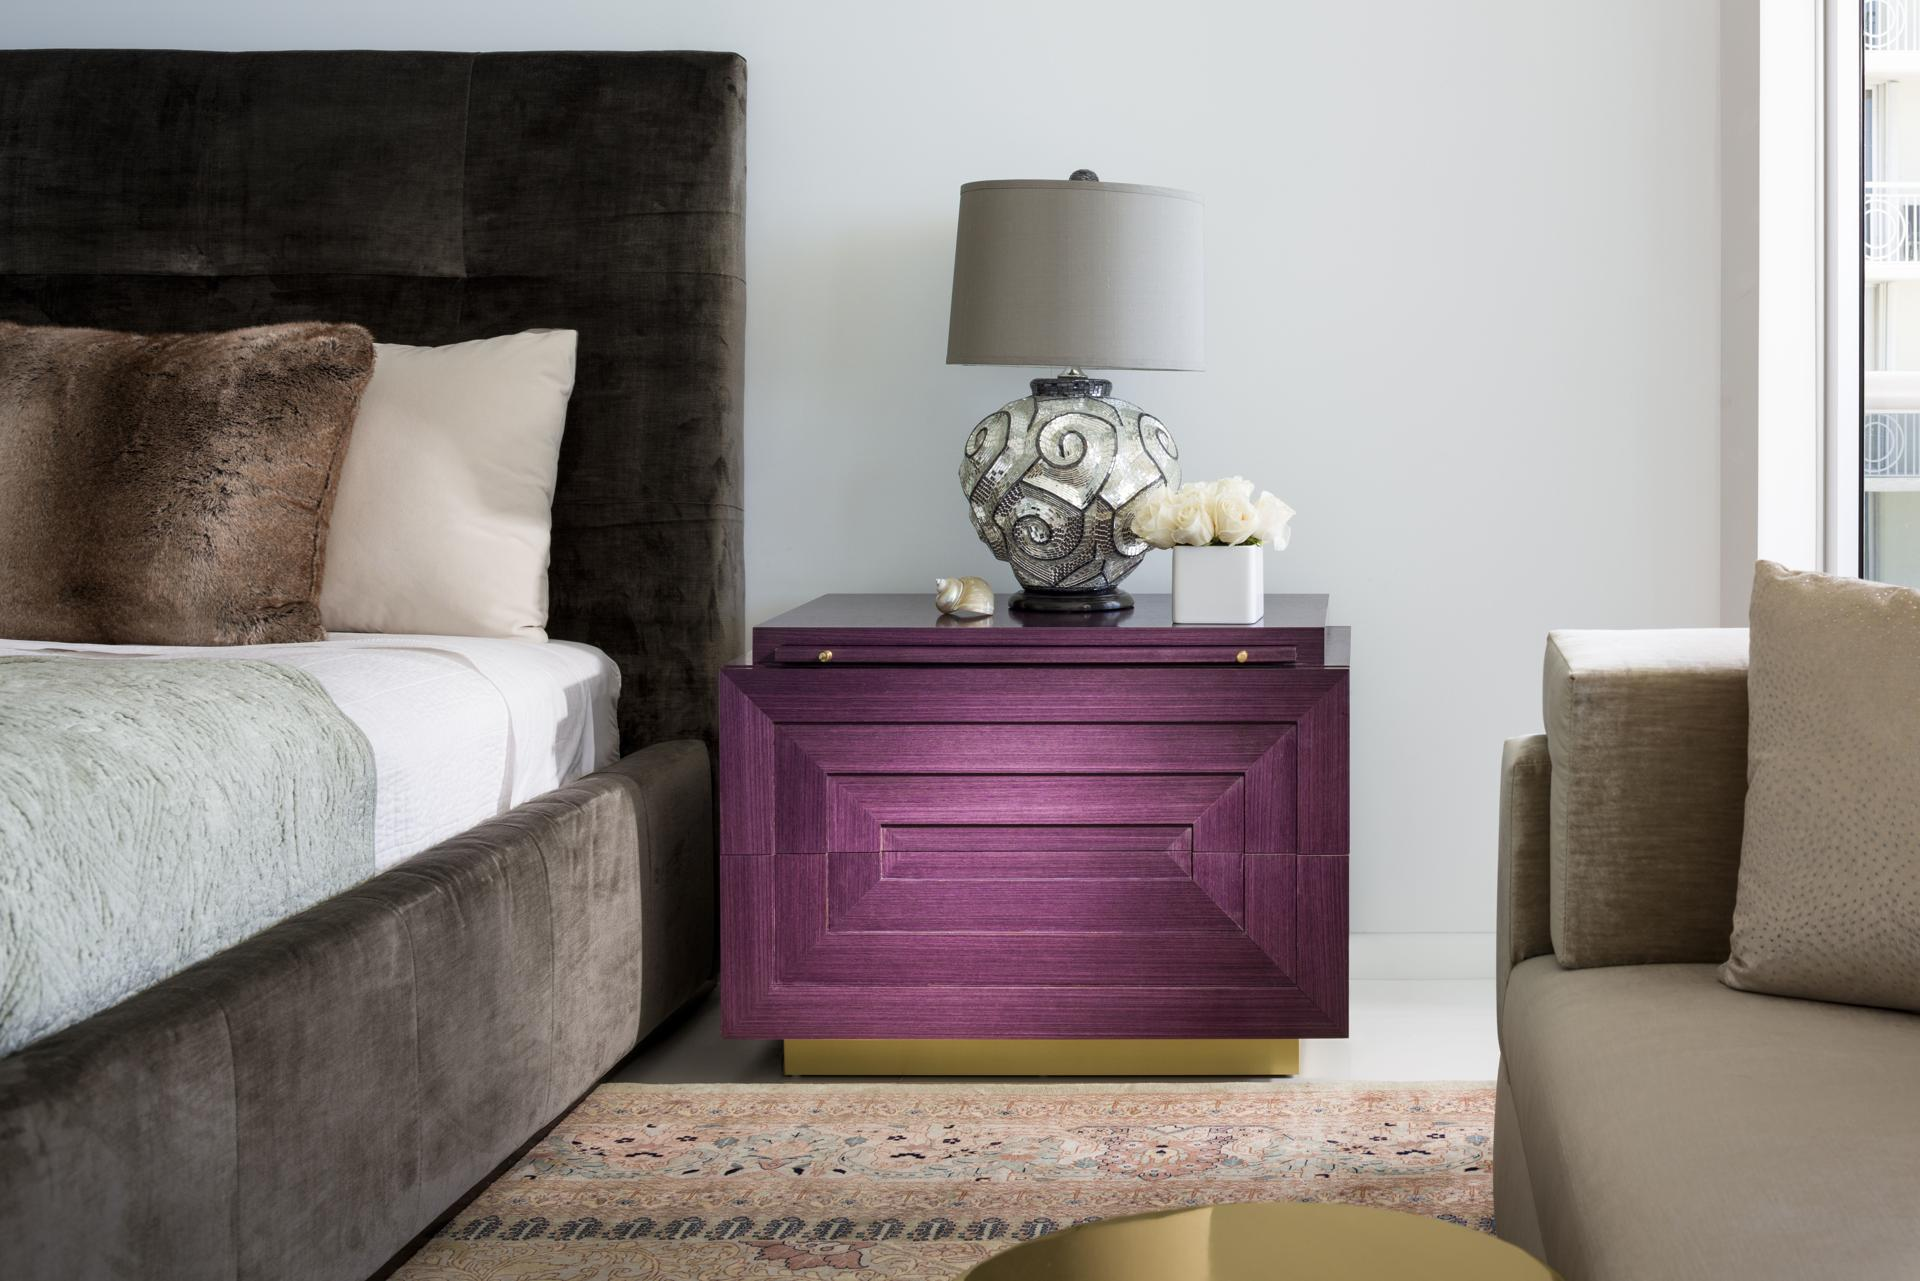 home decor trends for 2017 are all about ease, comfort - the